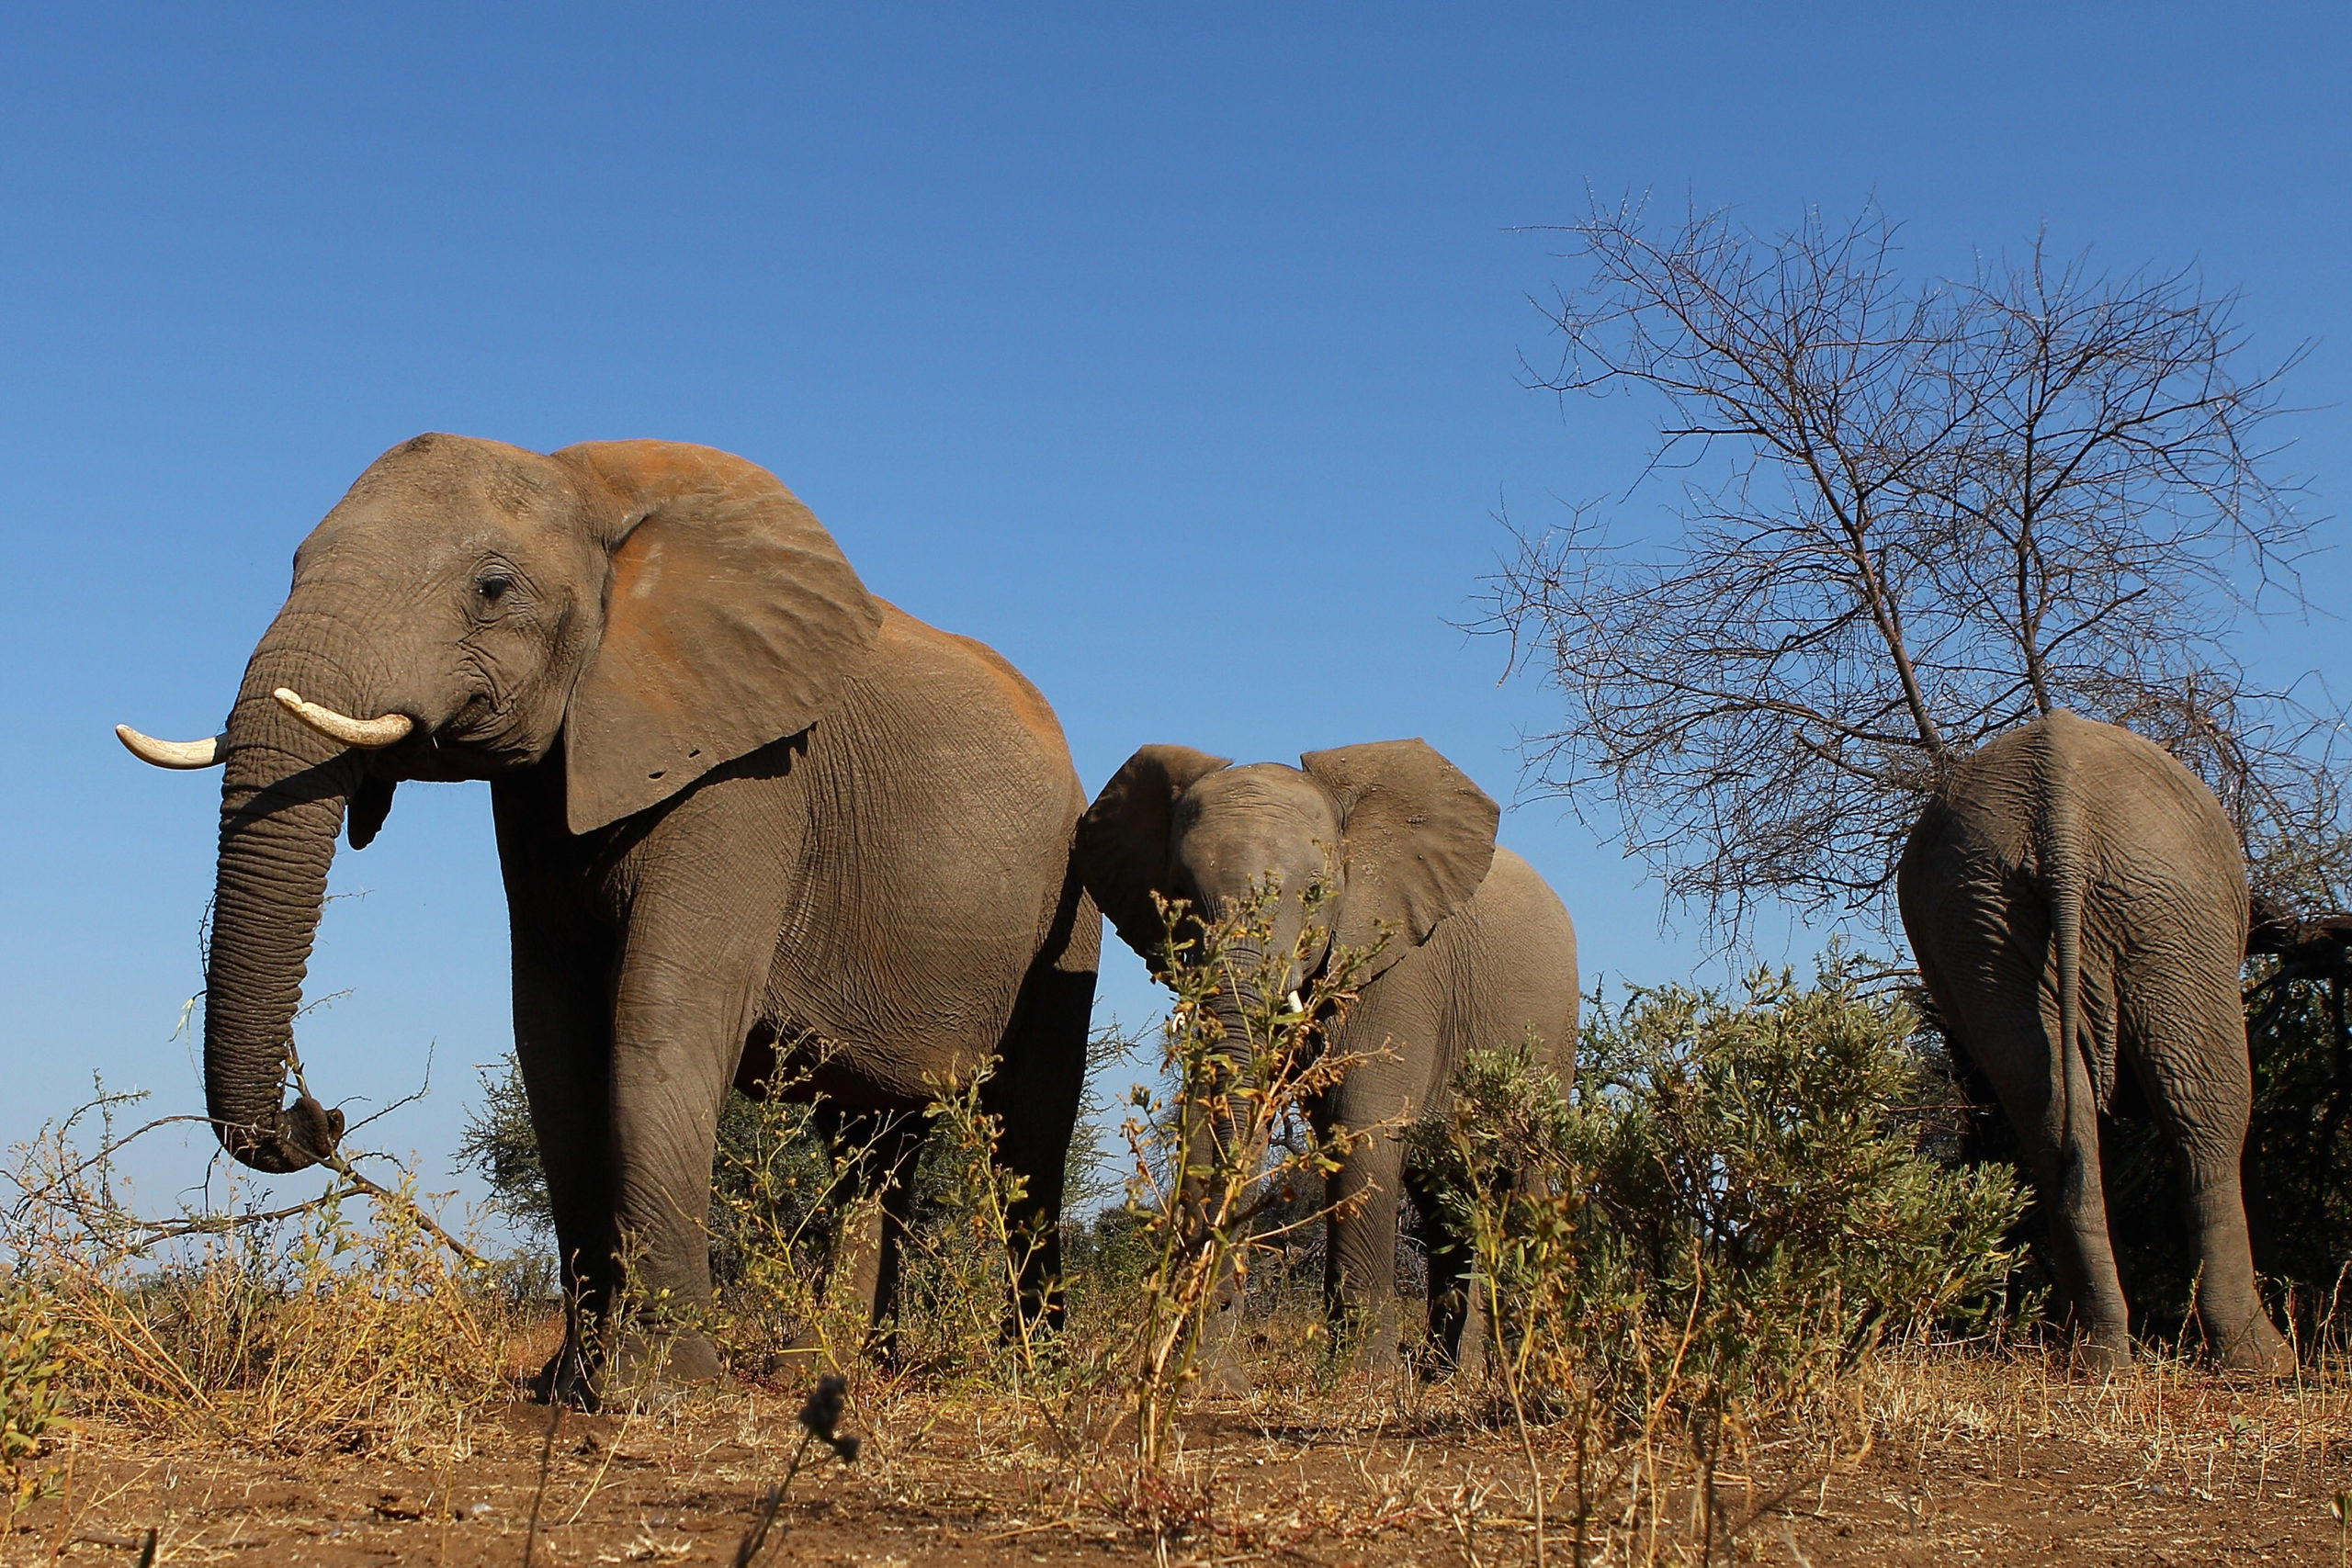 A herd of elephants at the Mashatu game reserve on July 26, 2010 in Mapungubwe, Botswana. (Photo by Cameron Spencer/Getty Images)